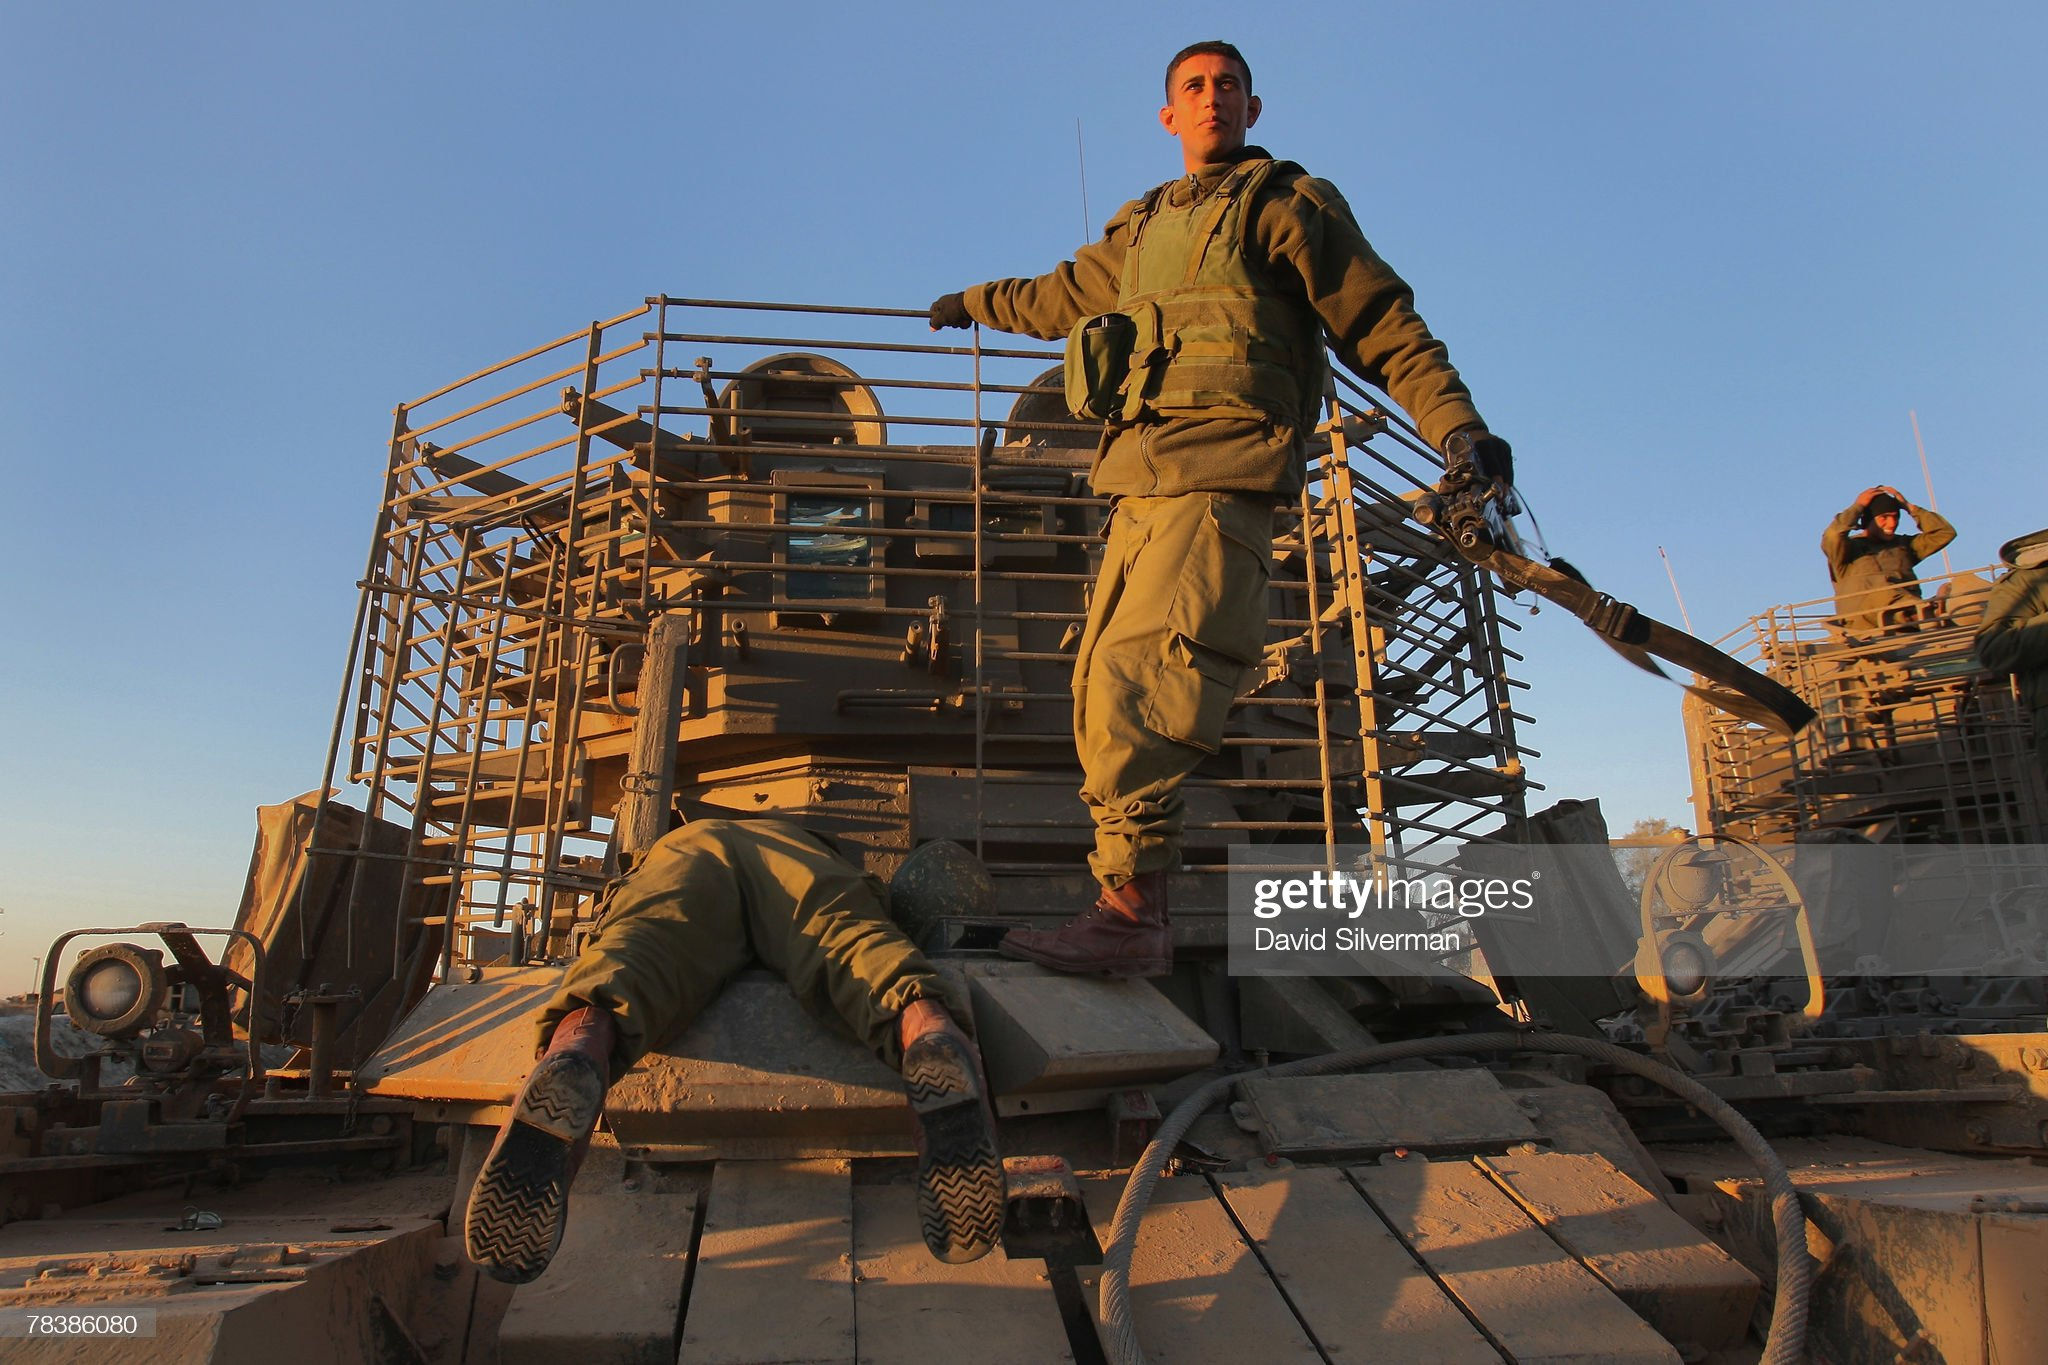 https://media.gettyimages.com/photos/israeli-troops-dismount-their-armoured-fighting-vehicles-on-returning-picture-id78386080?s=2048x2048